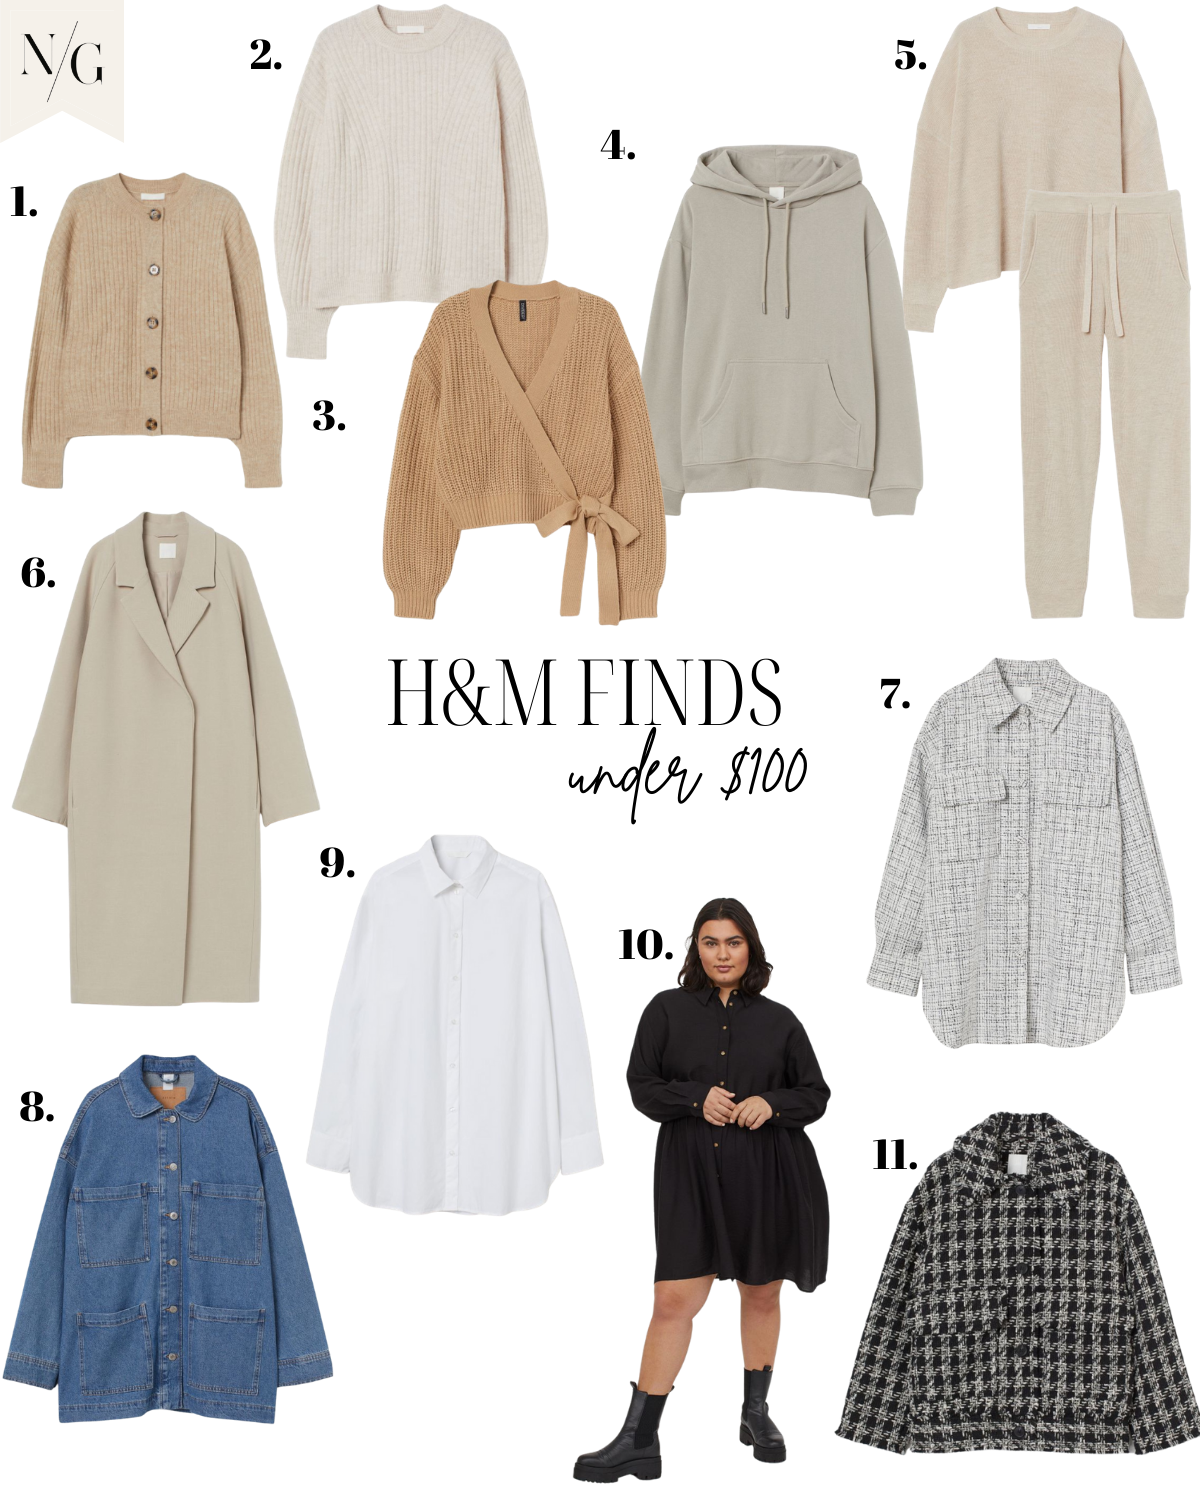 HM FINDS UNDER $100 |H&M Finds by popular San Diego fashion blog, Navy Grace: collage image of H&M tan sweaters, denim jacket, tan sweater set, grey hoodie, tan trench coat, black and white houndstooth jacket, black shirt dress, and white button up top.